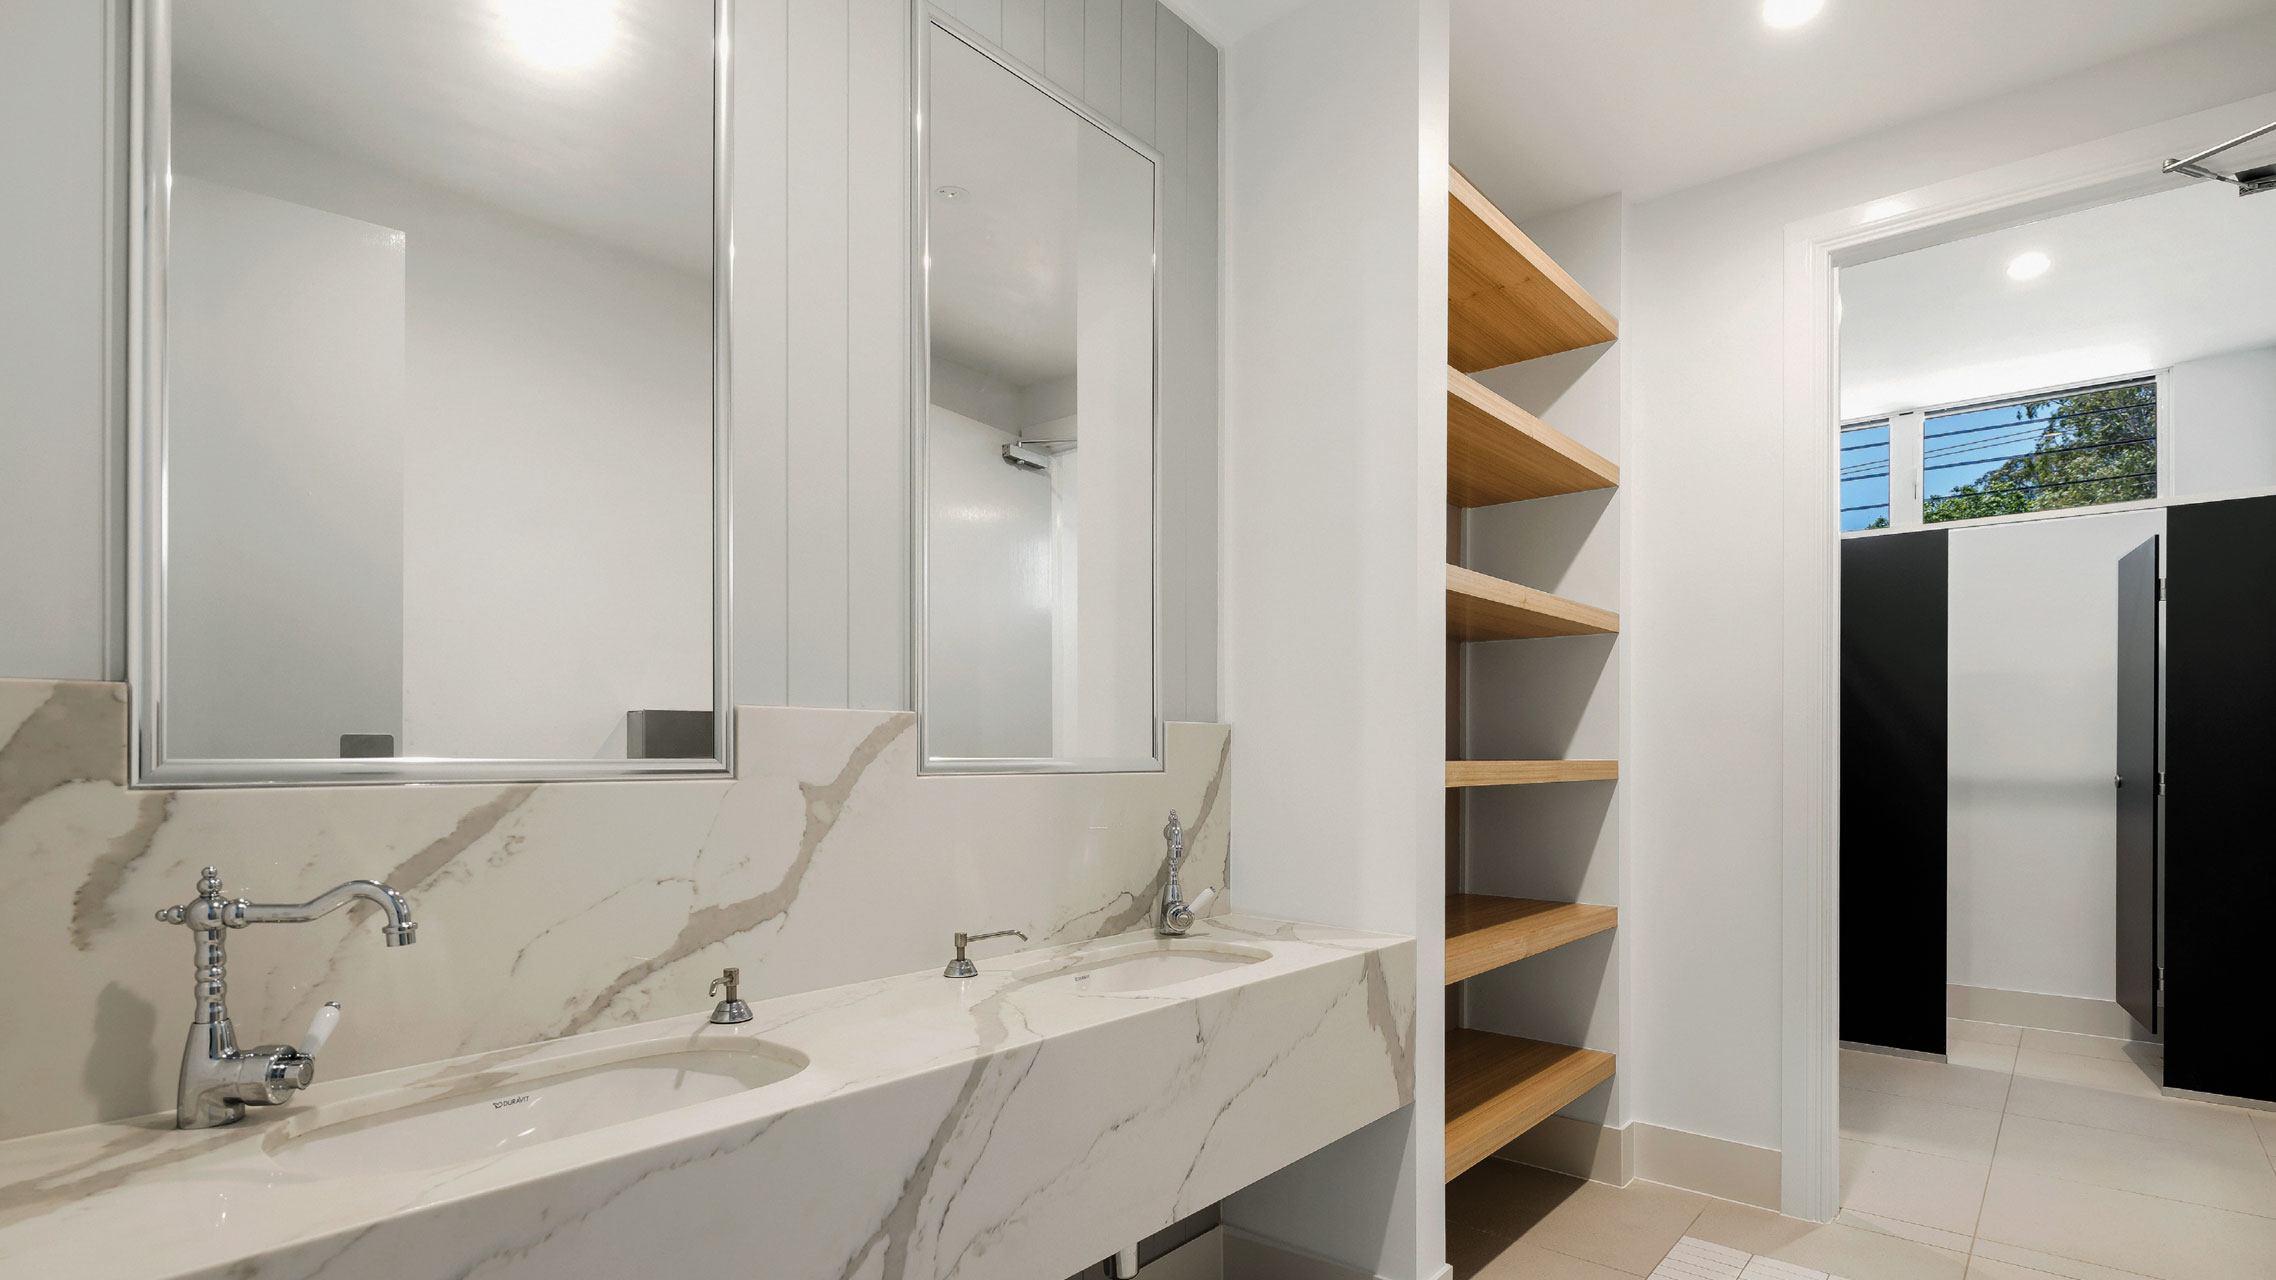 Two Bathroom Mirrors with Ultra Silver frame